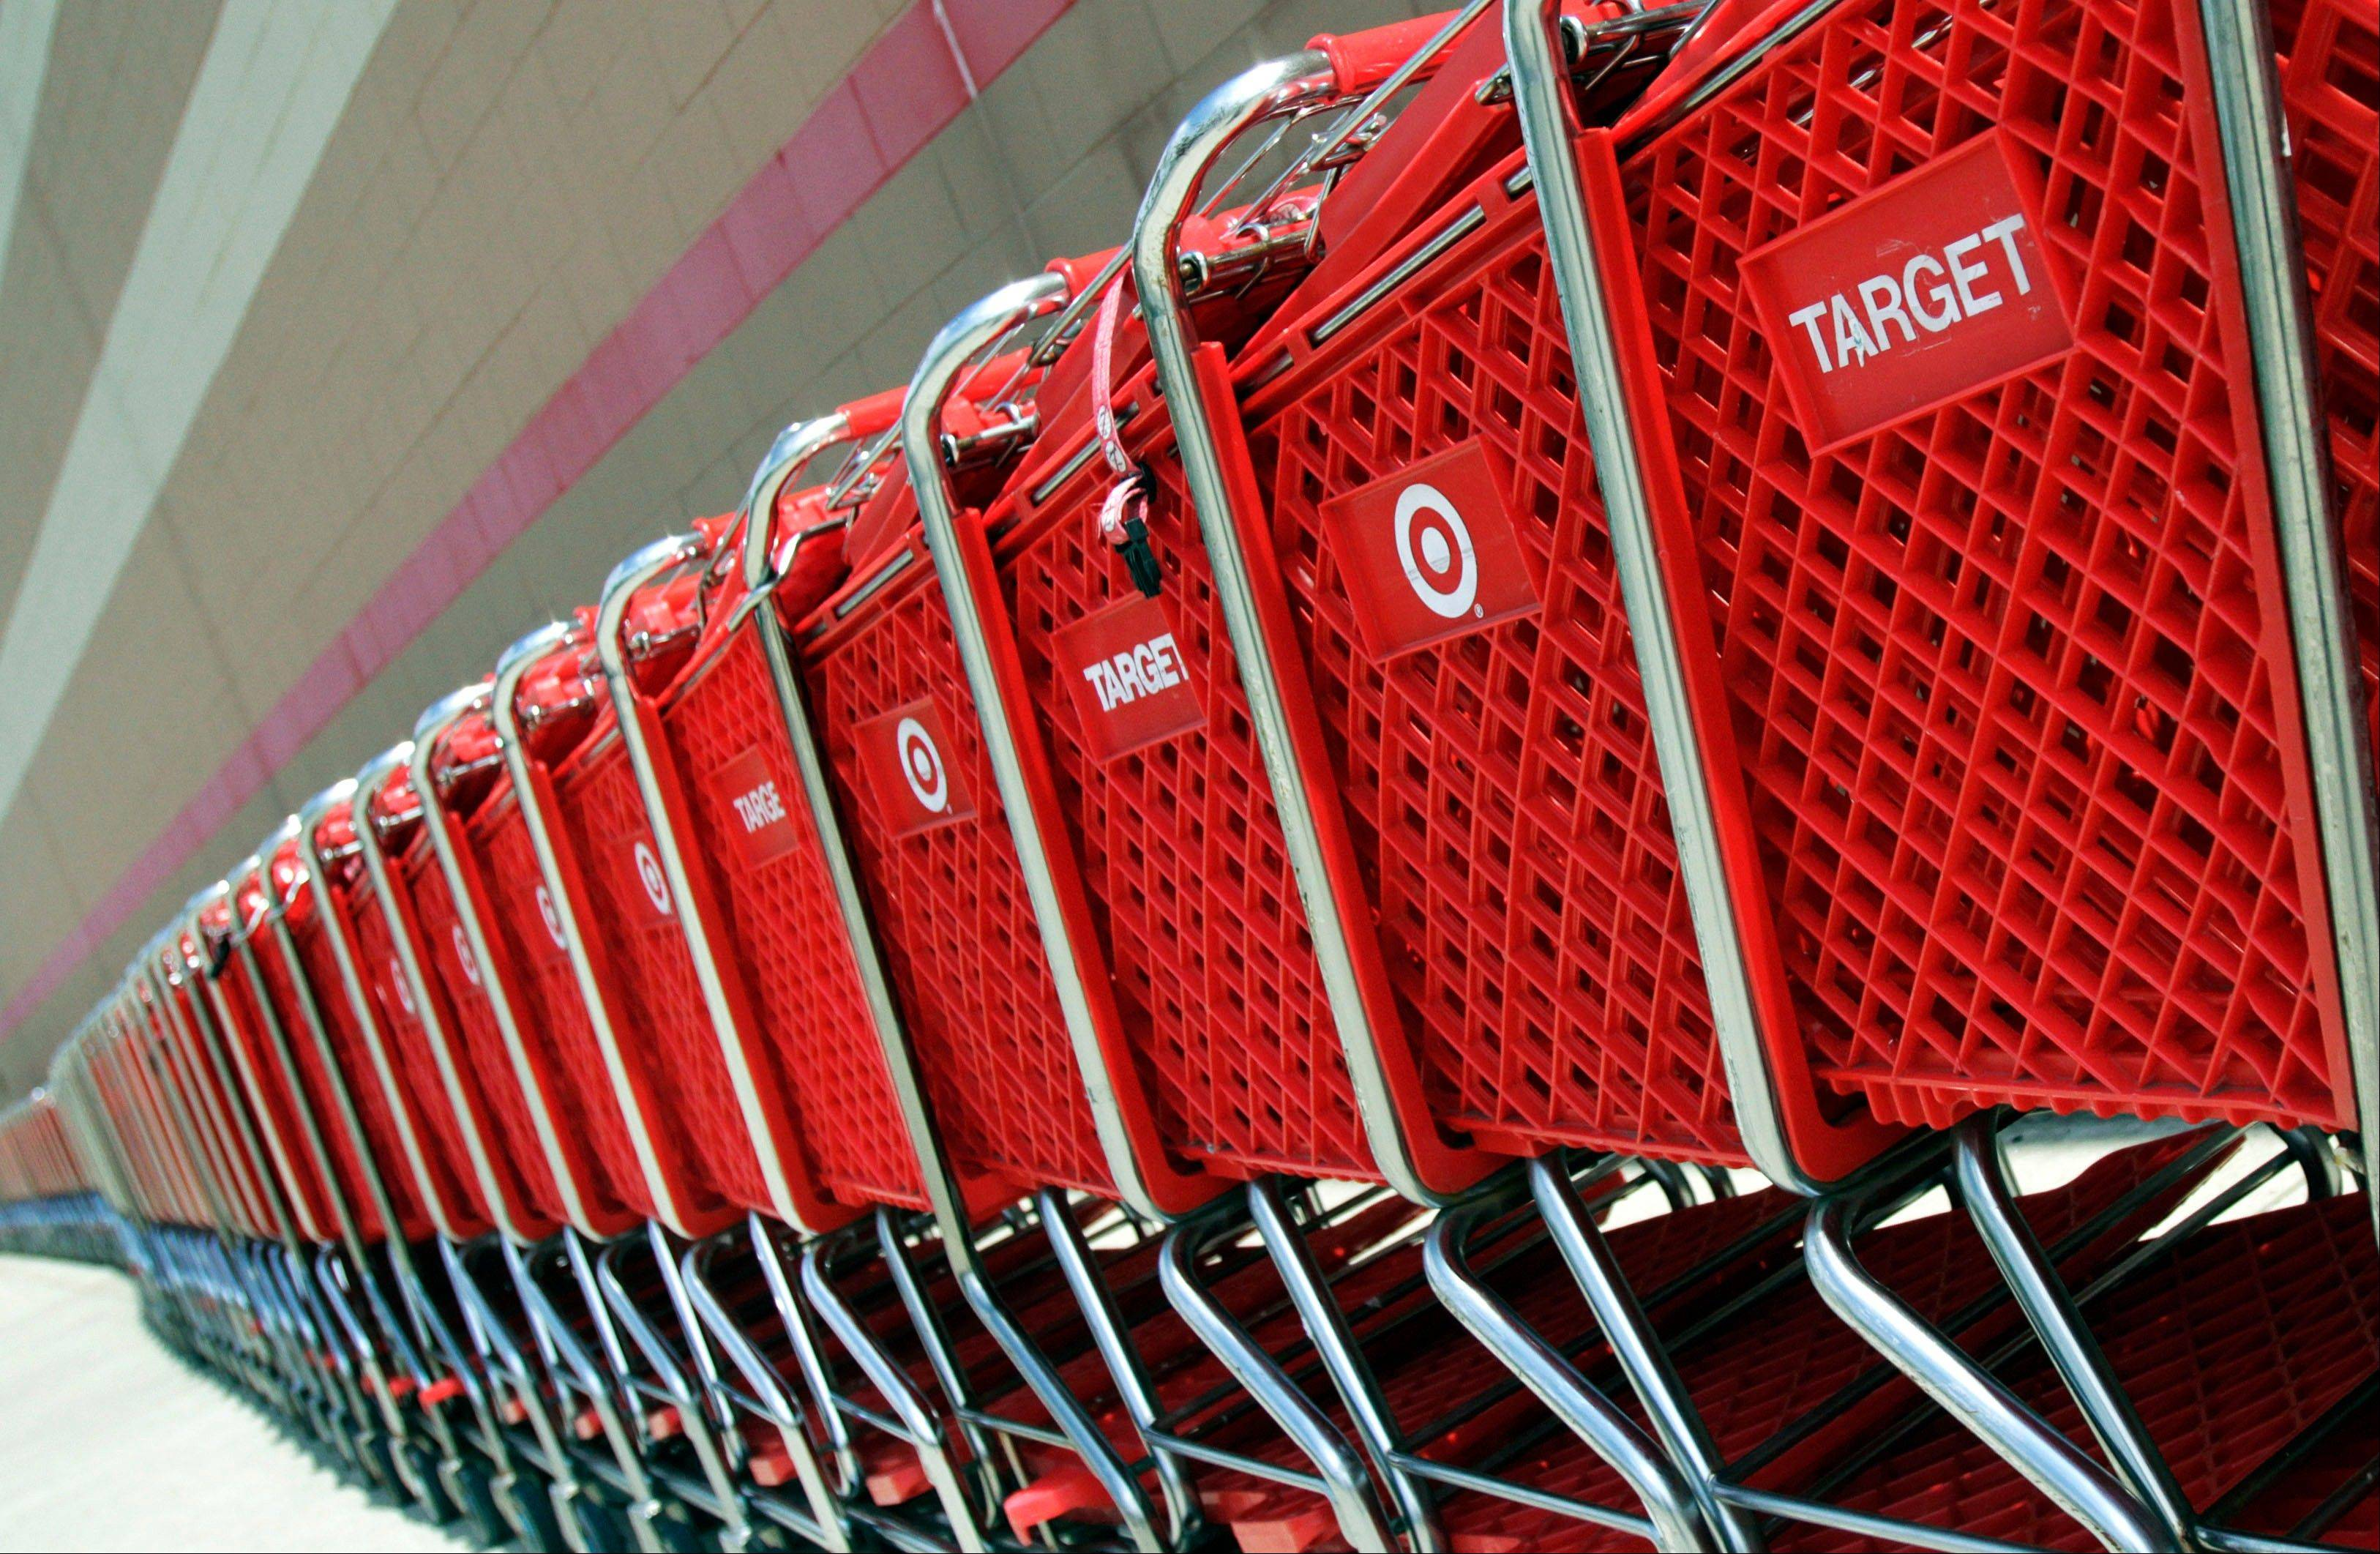 Shopping carts sit parked outside a Target store in Marlborough, Mass.